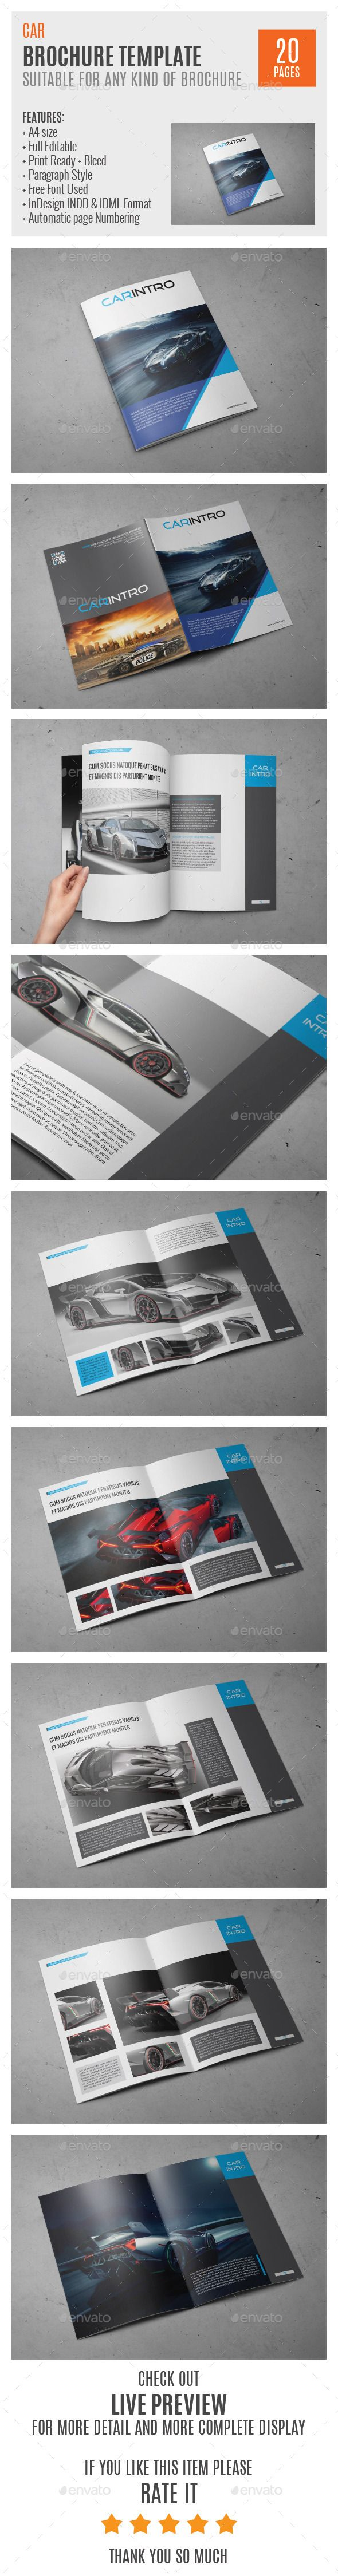 Car A4 Indesign Brochure Template #design Download: http://graphicriver.net/item/car-a4-indesign-brochure-template-0036/10281883?ref=ksioks